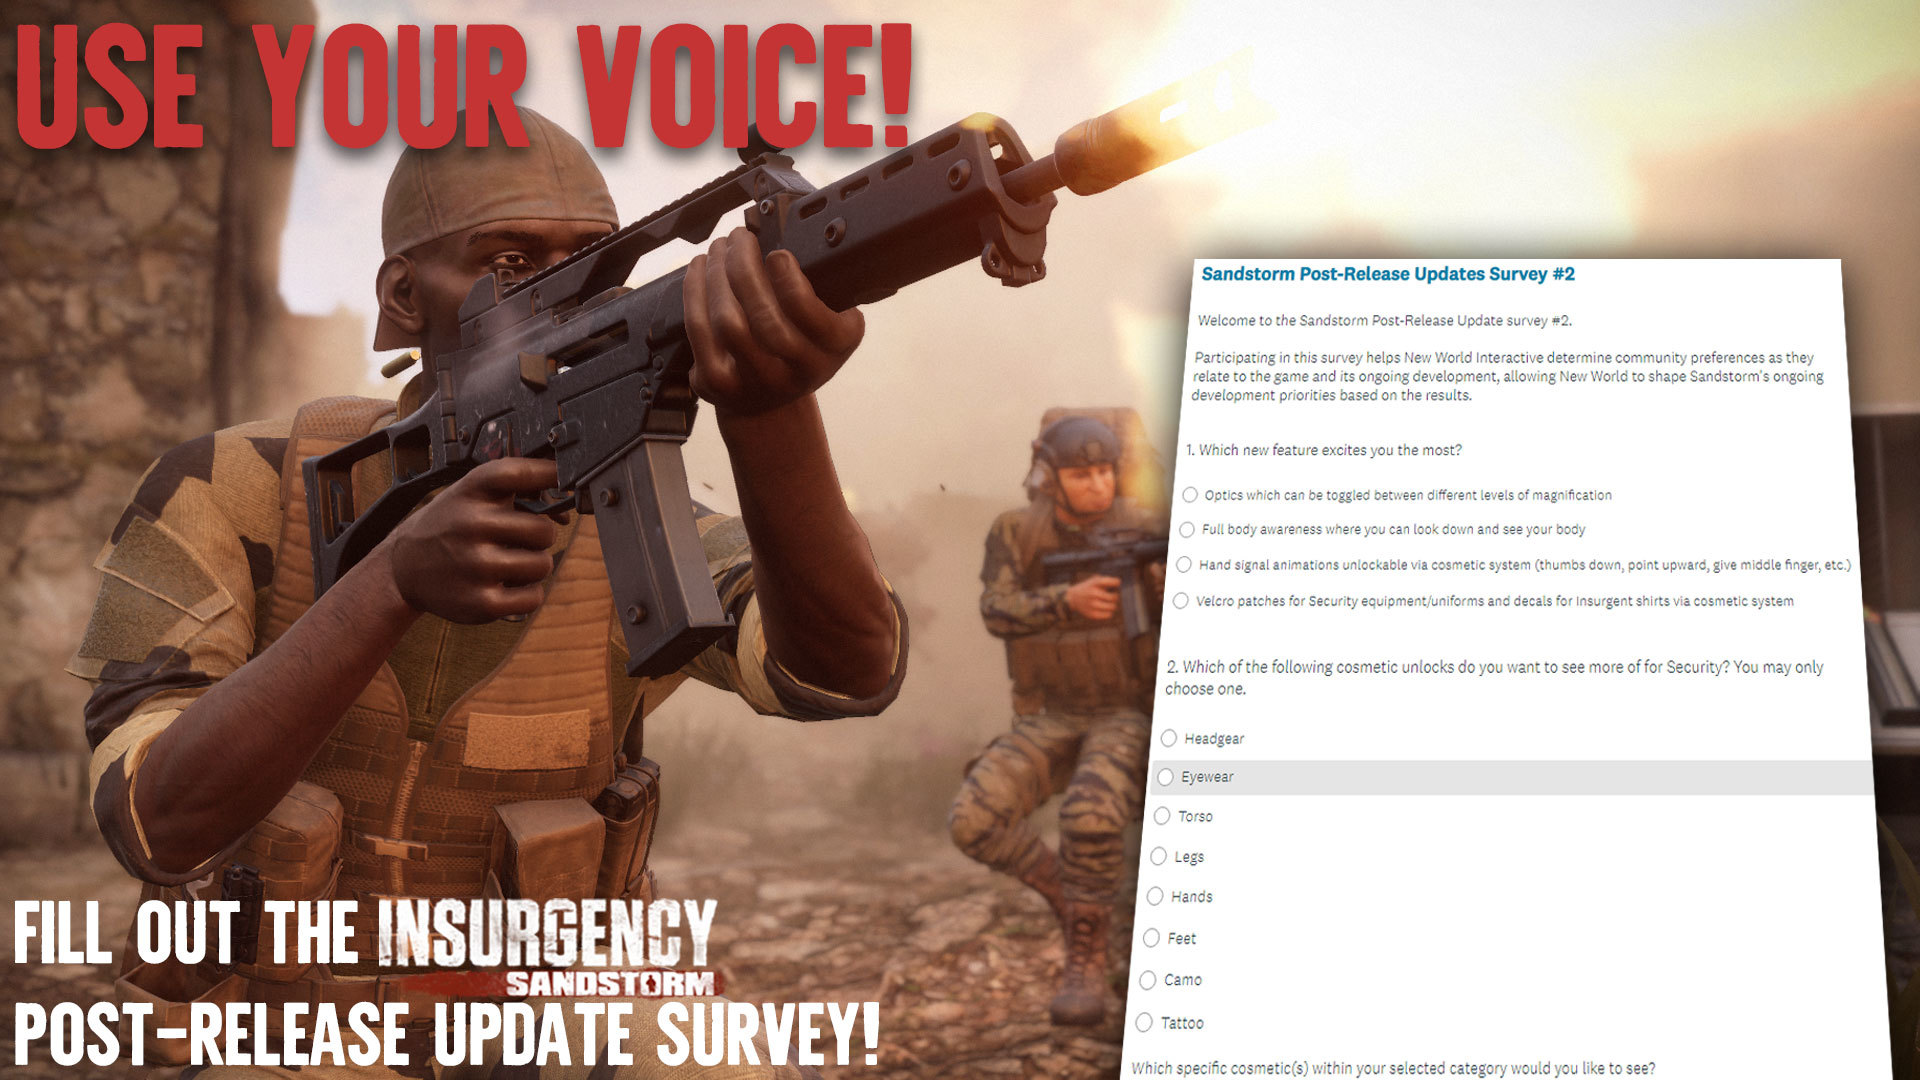 May 7 New Post-Release Content Survey Now Open! Insurgency